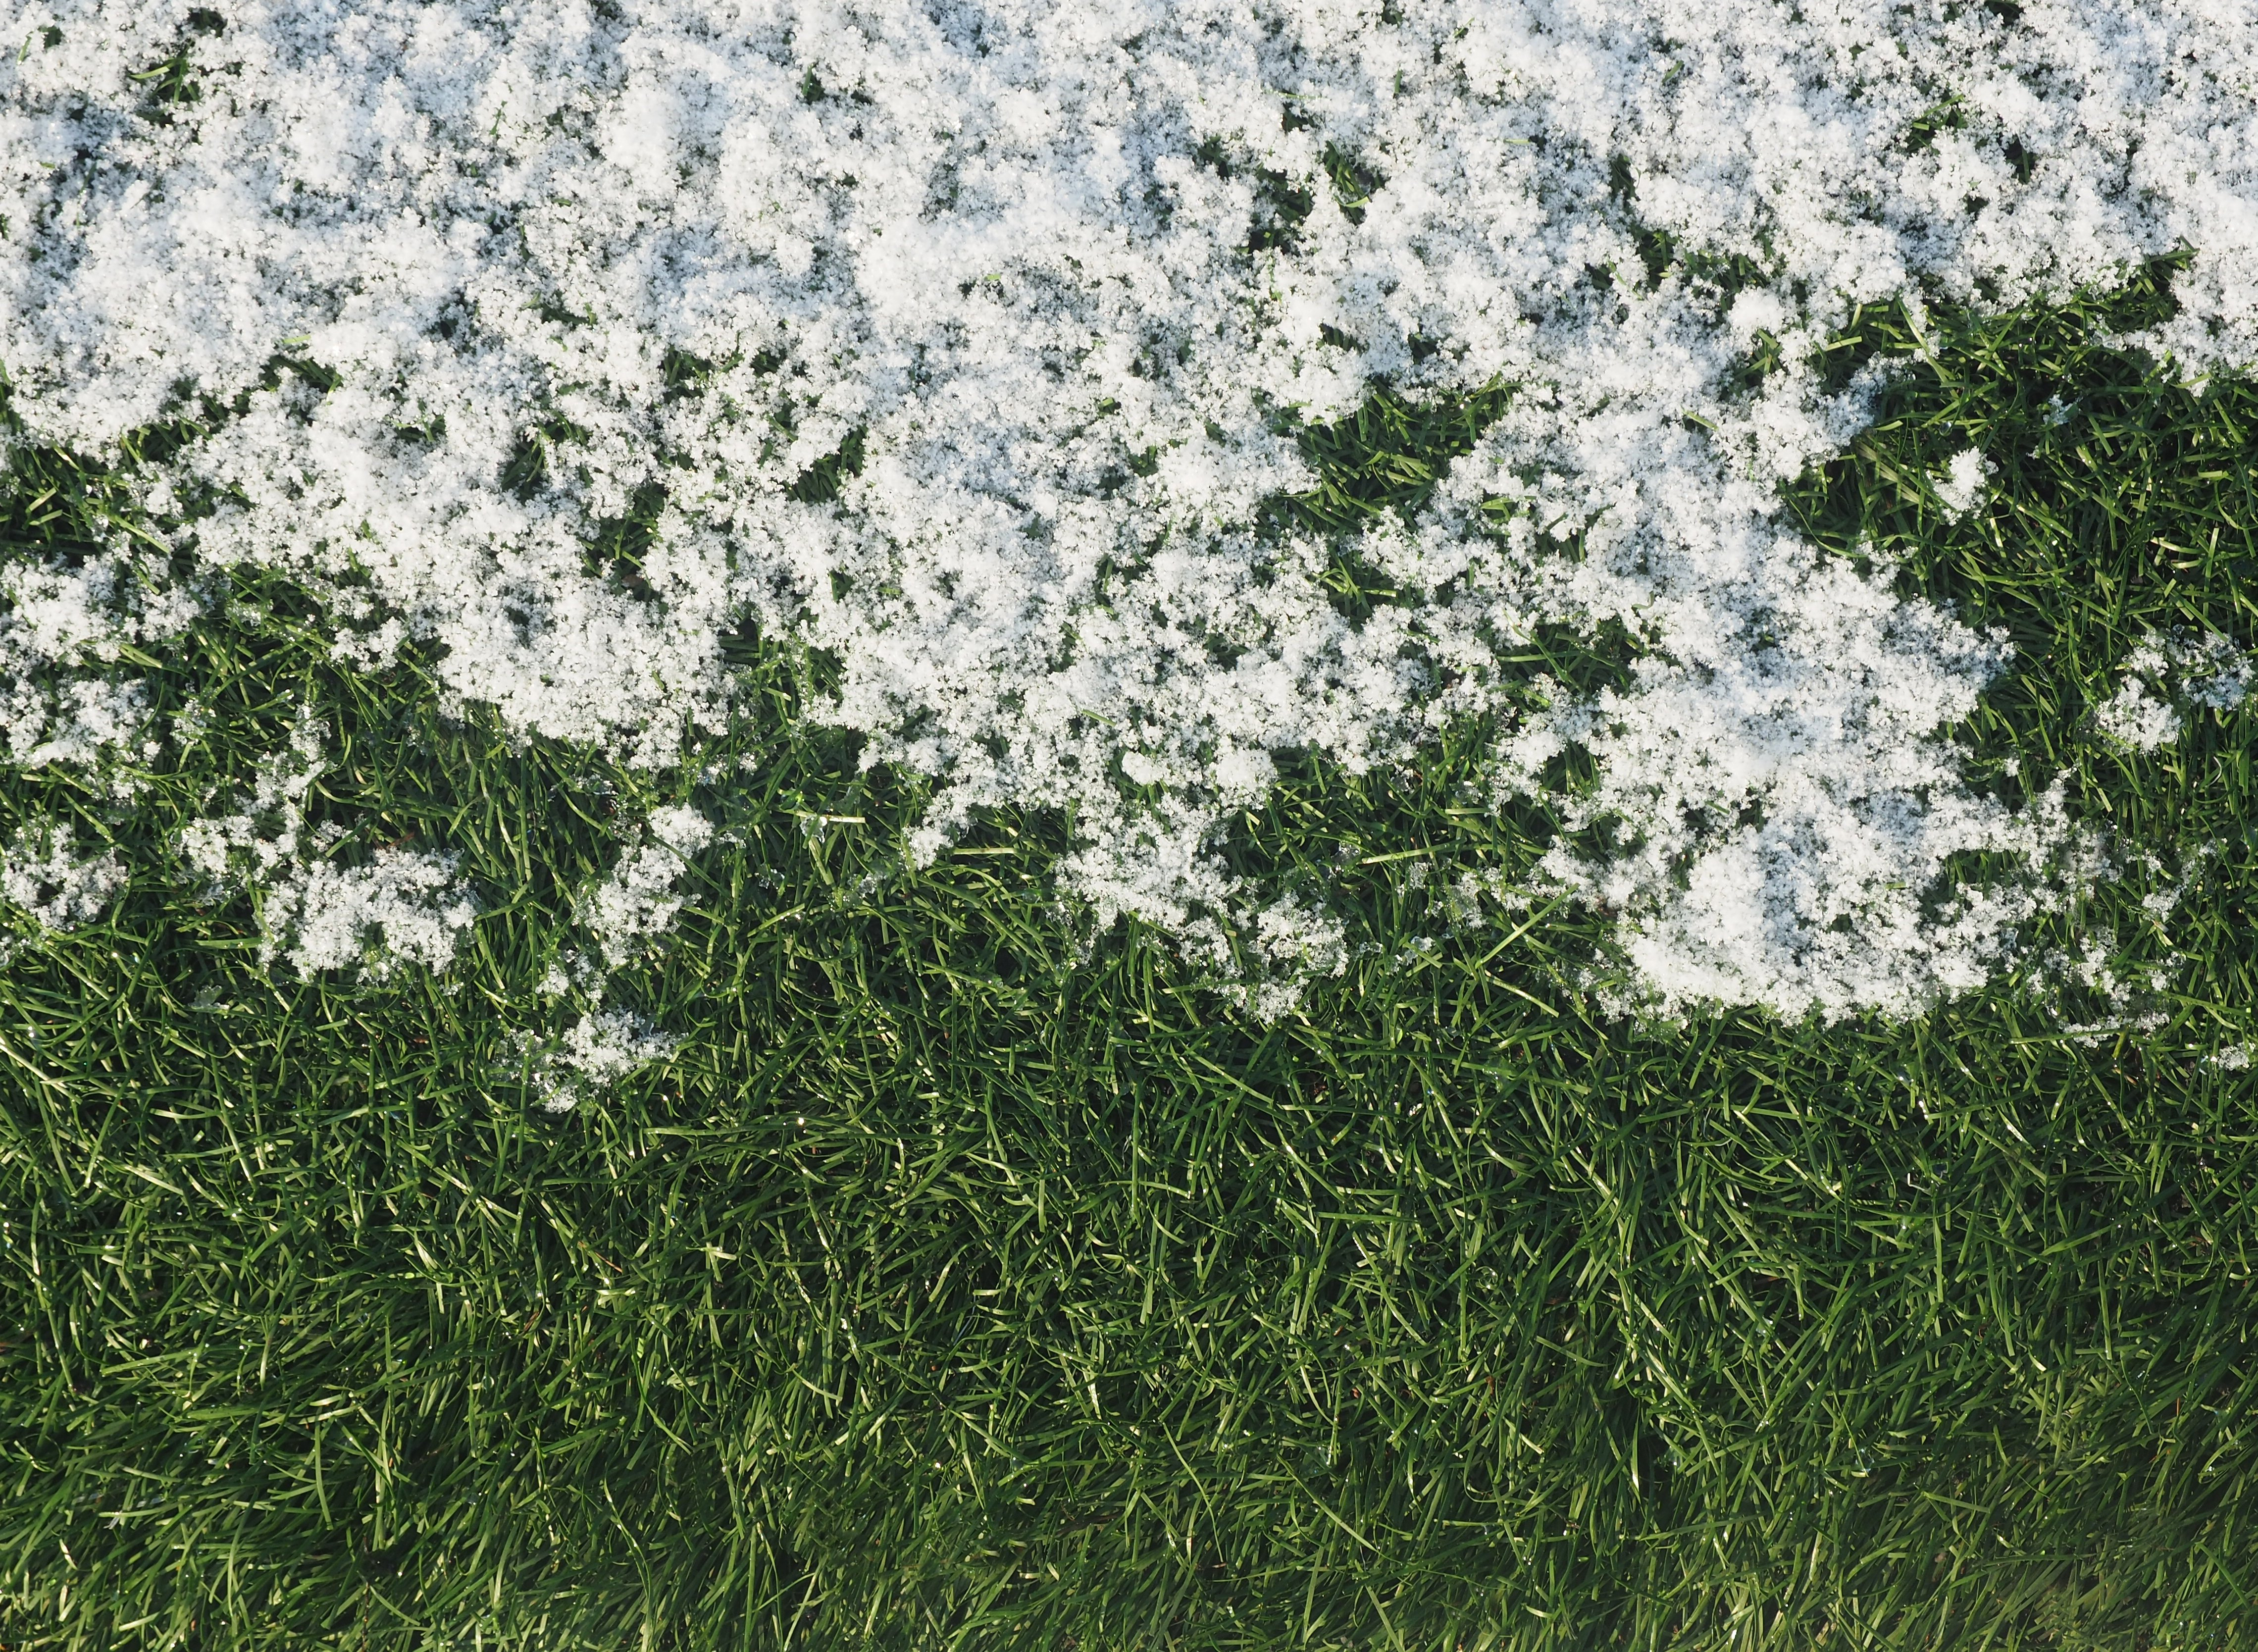 The optimal timing for fall fertilizer would be when the shoot growth of the turf stops and before the ground freezes.